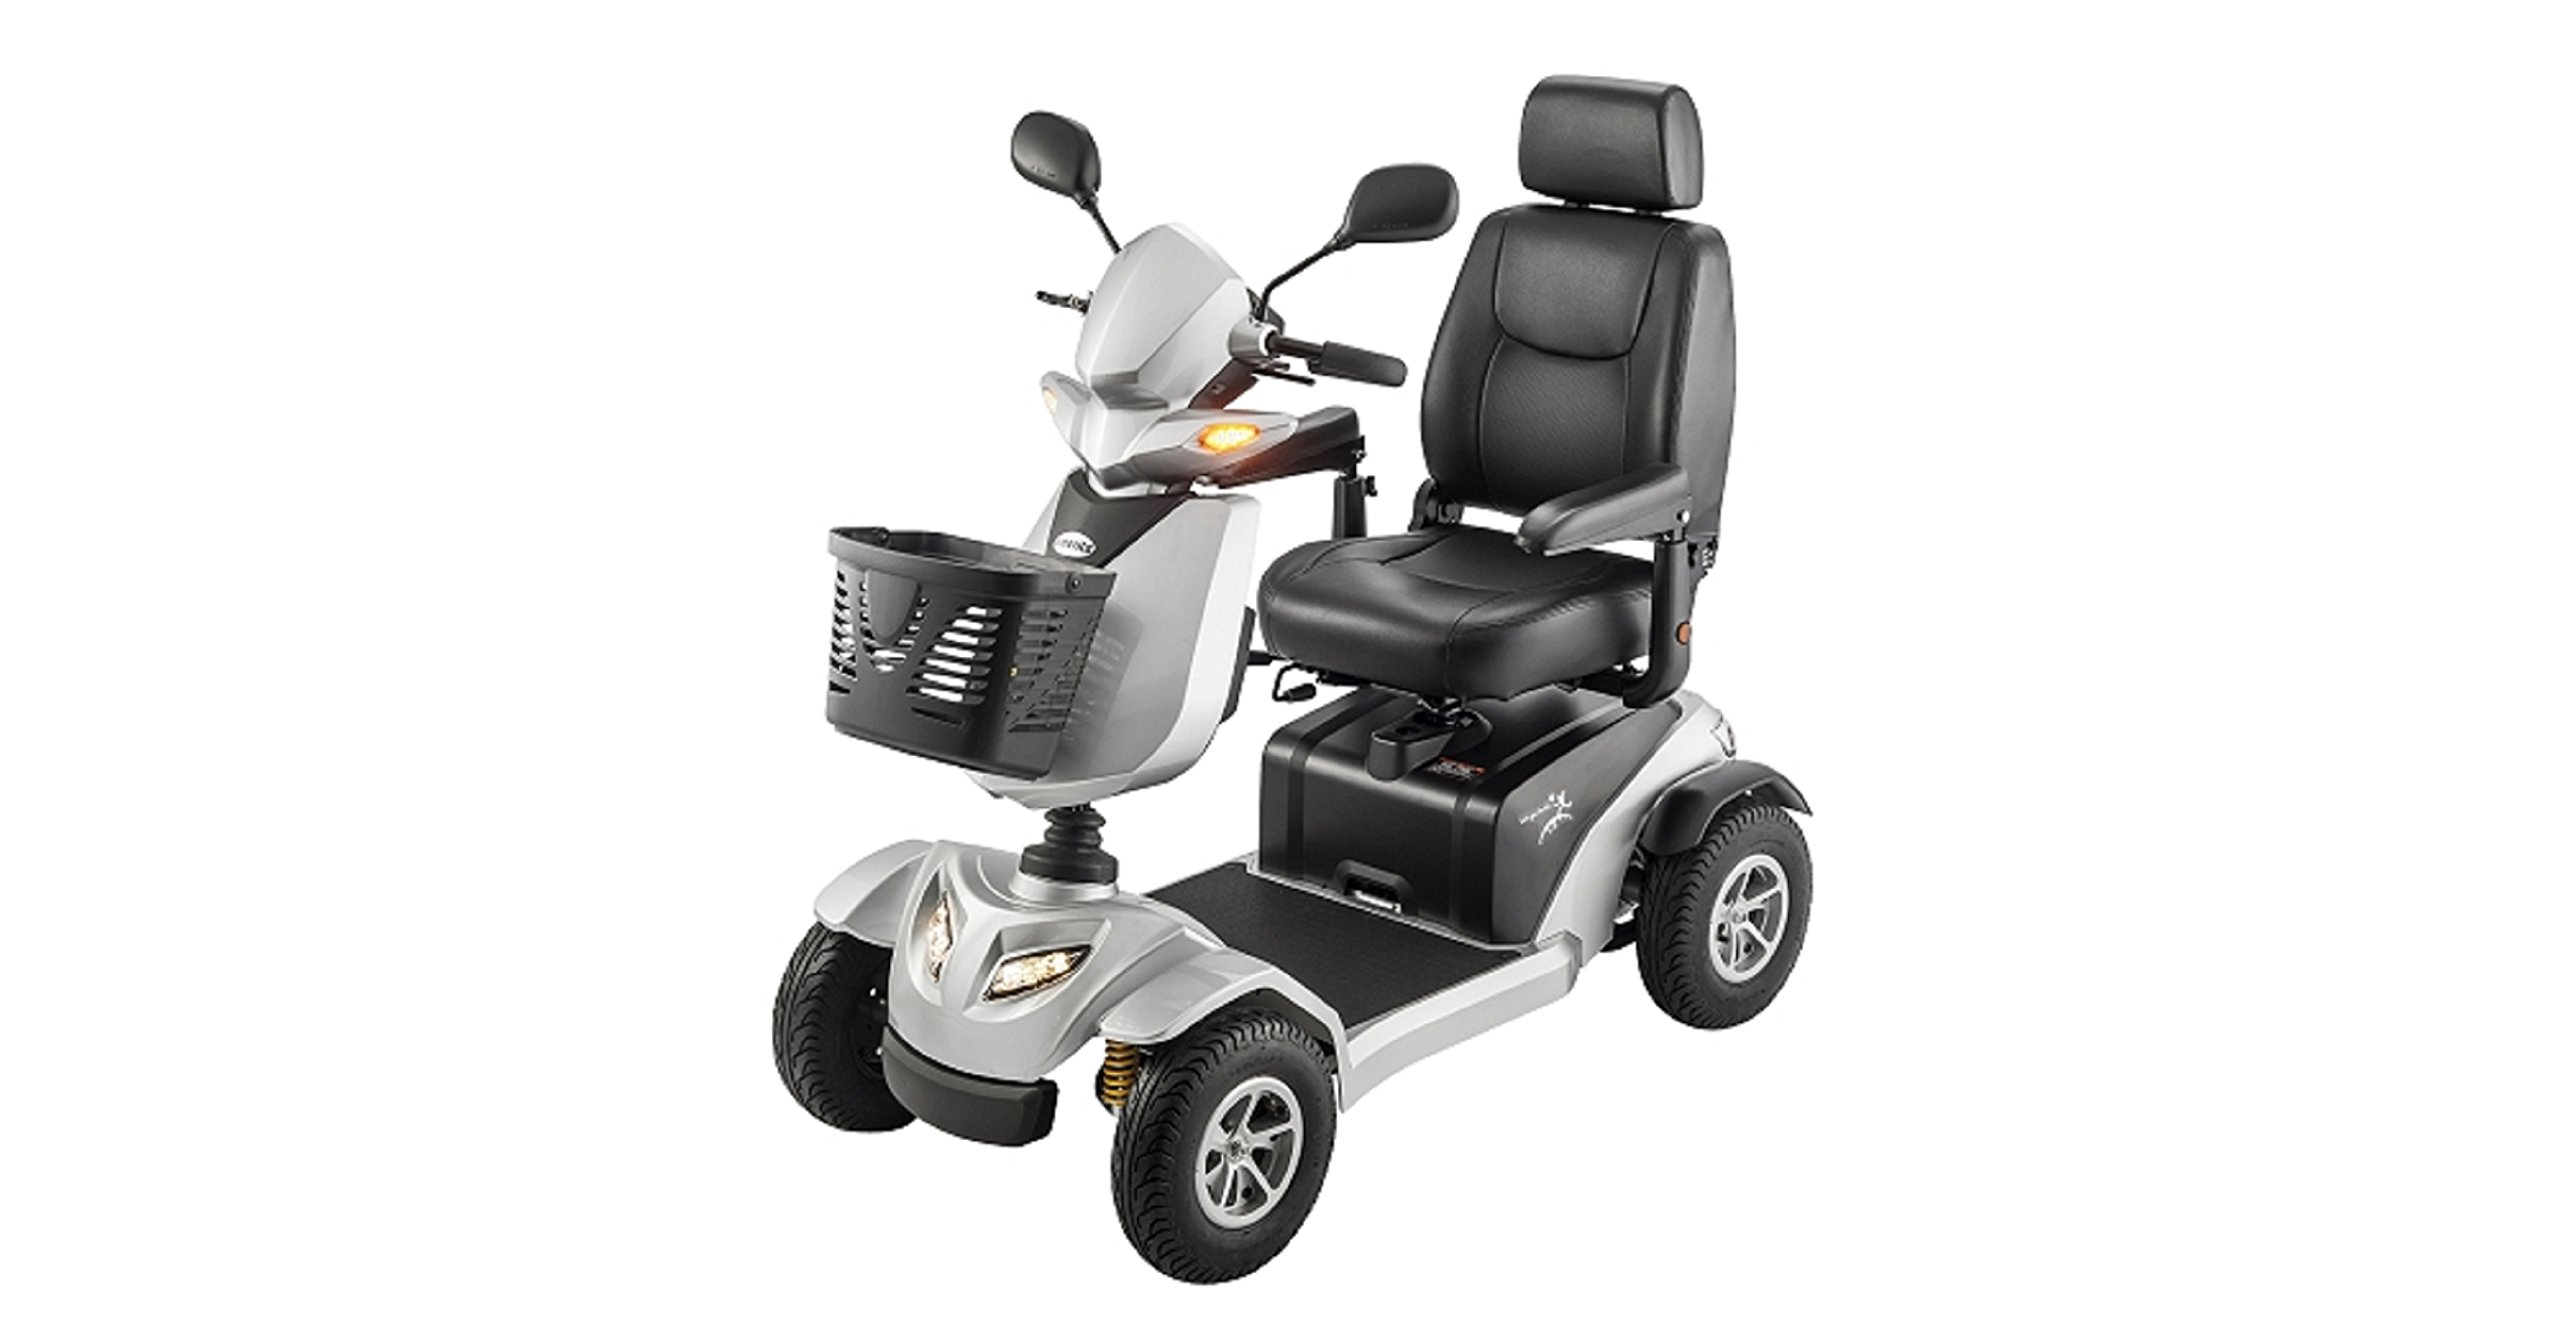 Merits Health Products - Silverado - 4-Wheel Full Suspension Electric Scooter - 18''W x 17''D - Silver